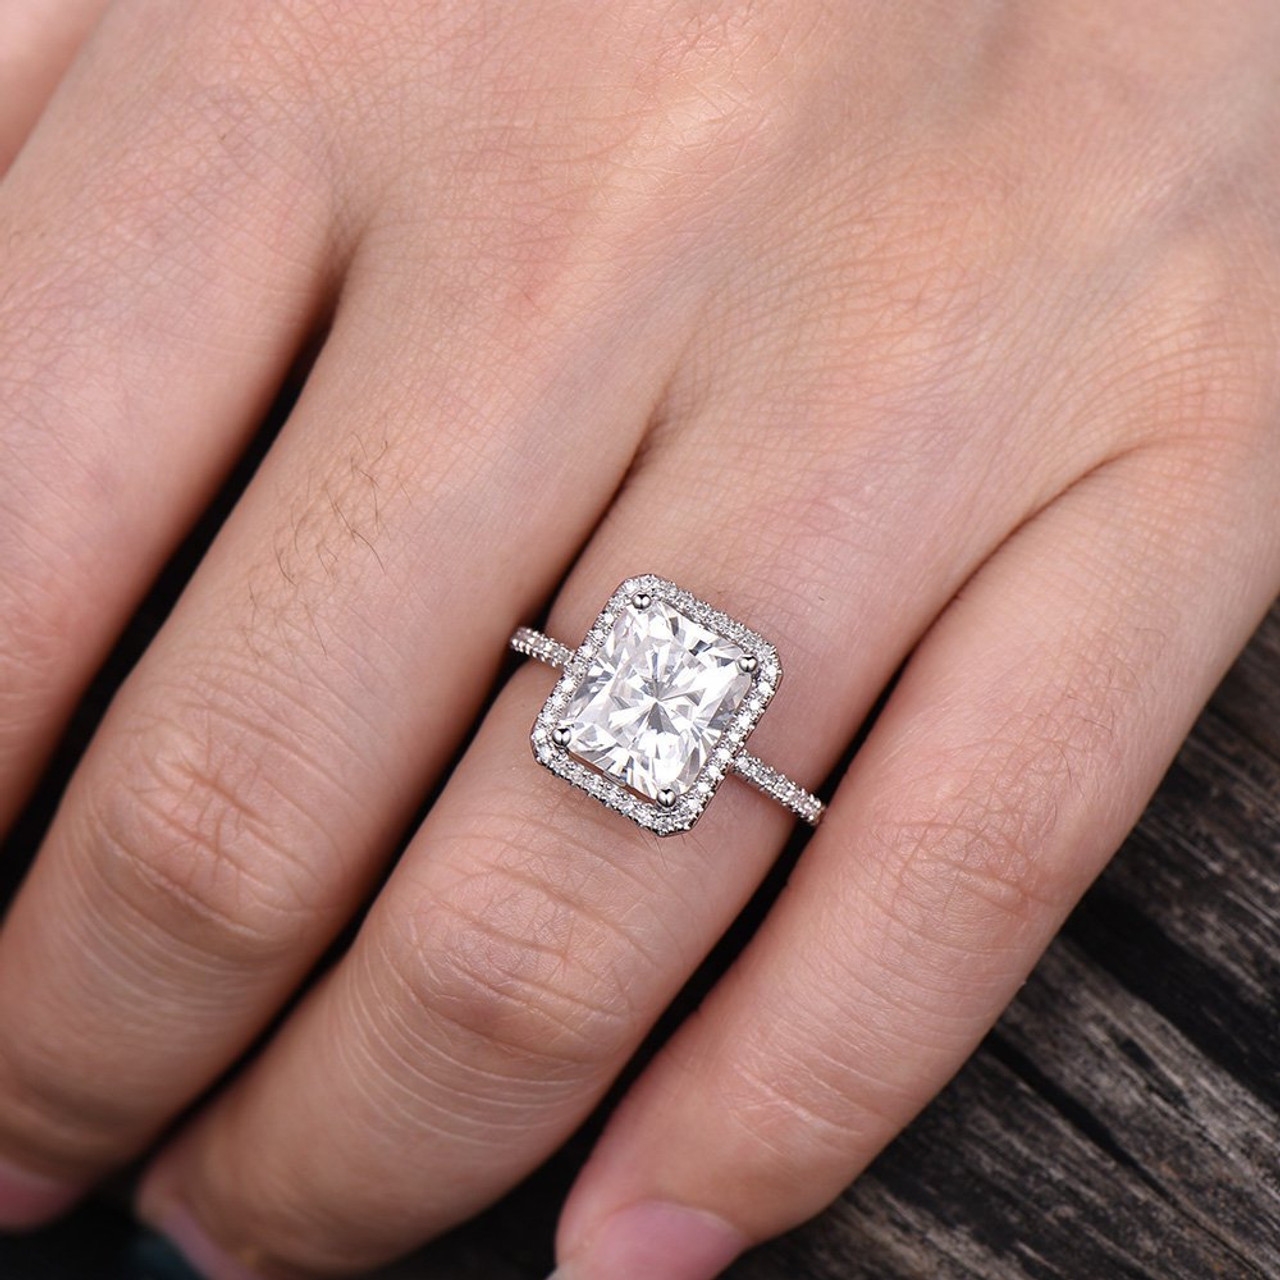 Simple Radiant Moissanite Solid 14K 18K White Gold Wedding Engagement Ring for Women with Certificate